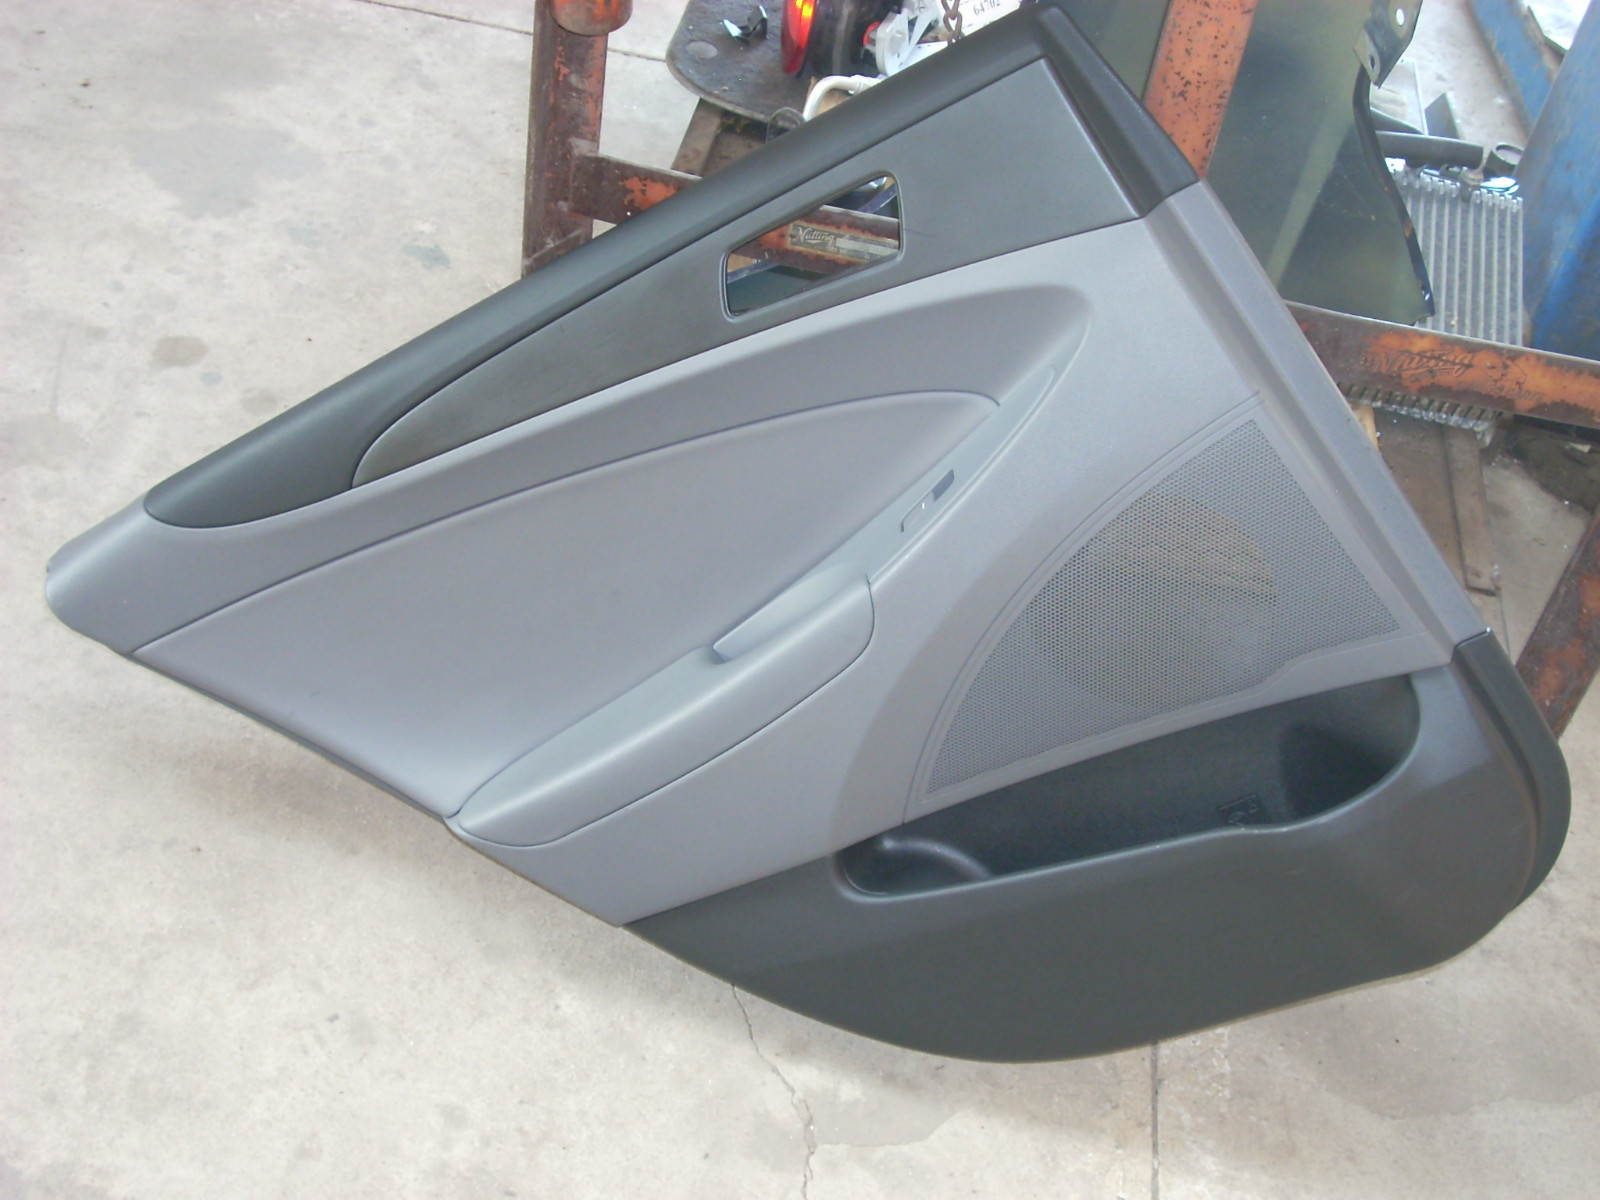 2011 HYUNDAI SONATA LEFT REAR DOOR TRIM PANEL